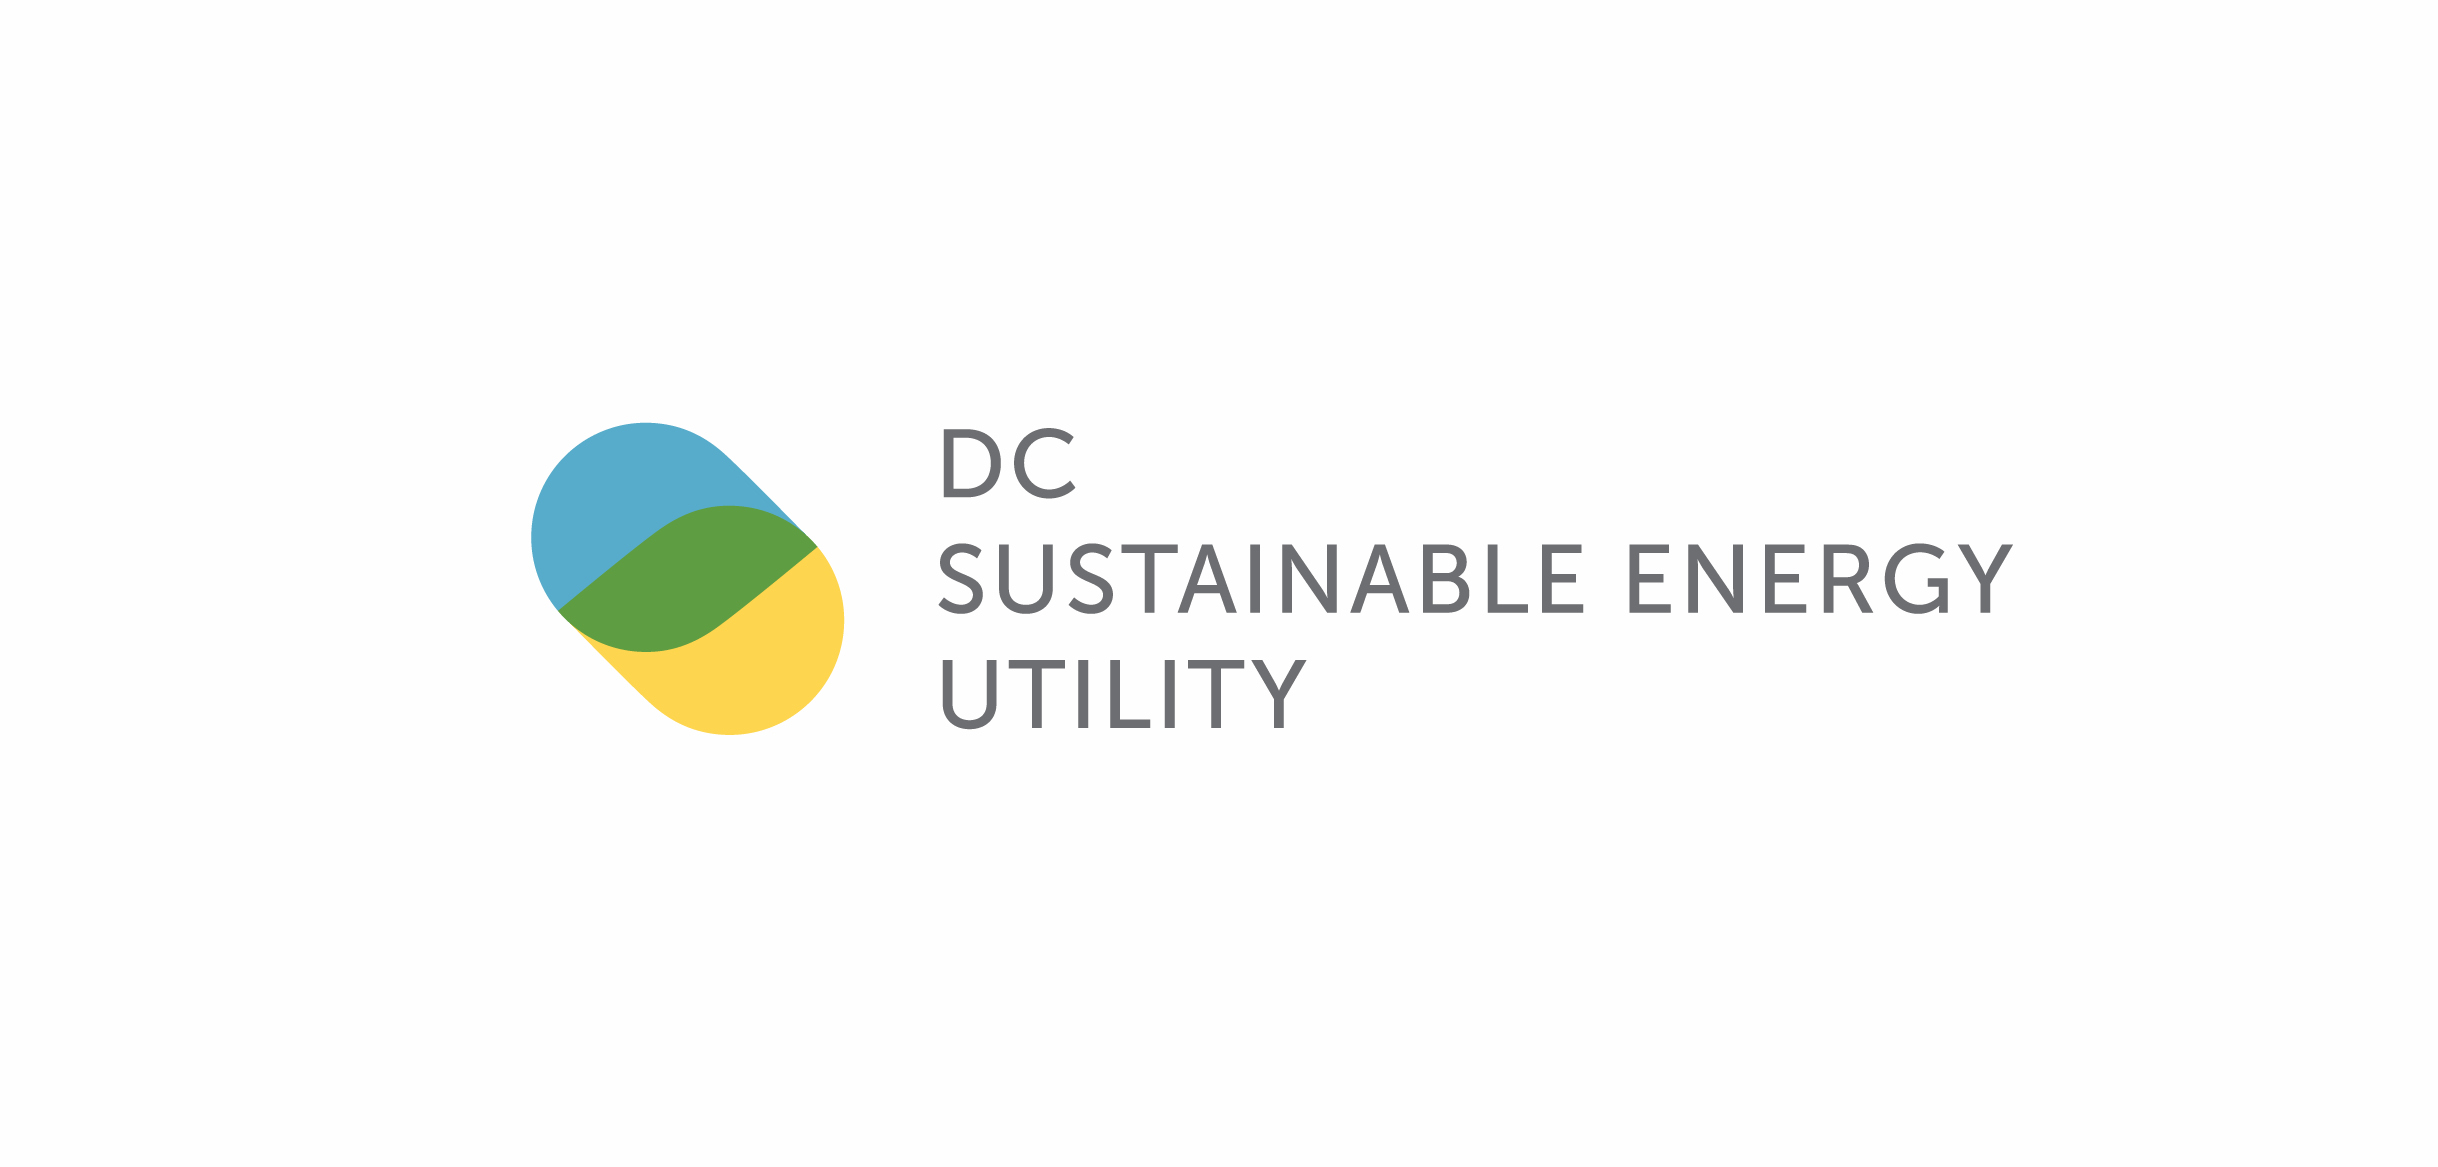 The DCSEU logo consists of two overlapping drop-like shapes, one blue and the other yellow. Where they overlap they create a green path. The words DC Sustainable Energy Utility are set in a san serif typeface to right of the mark.